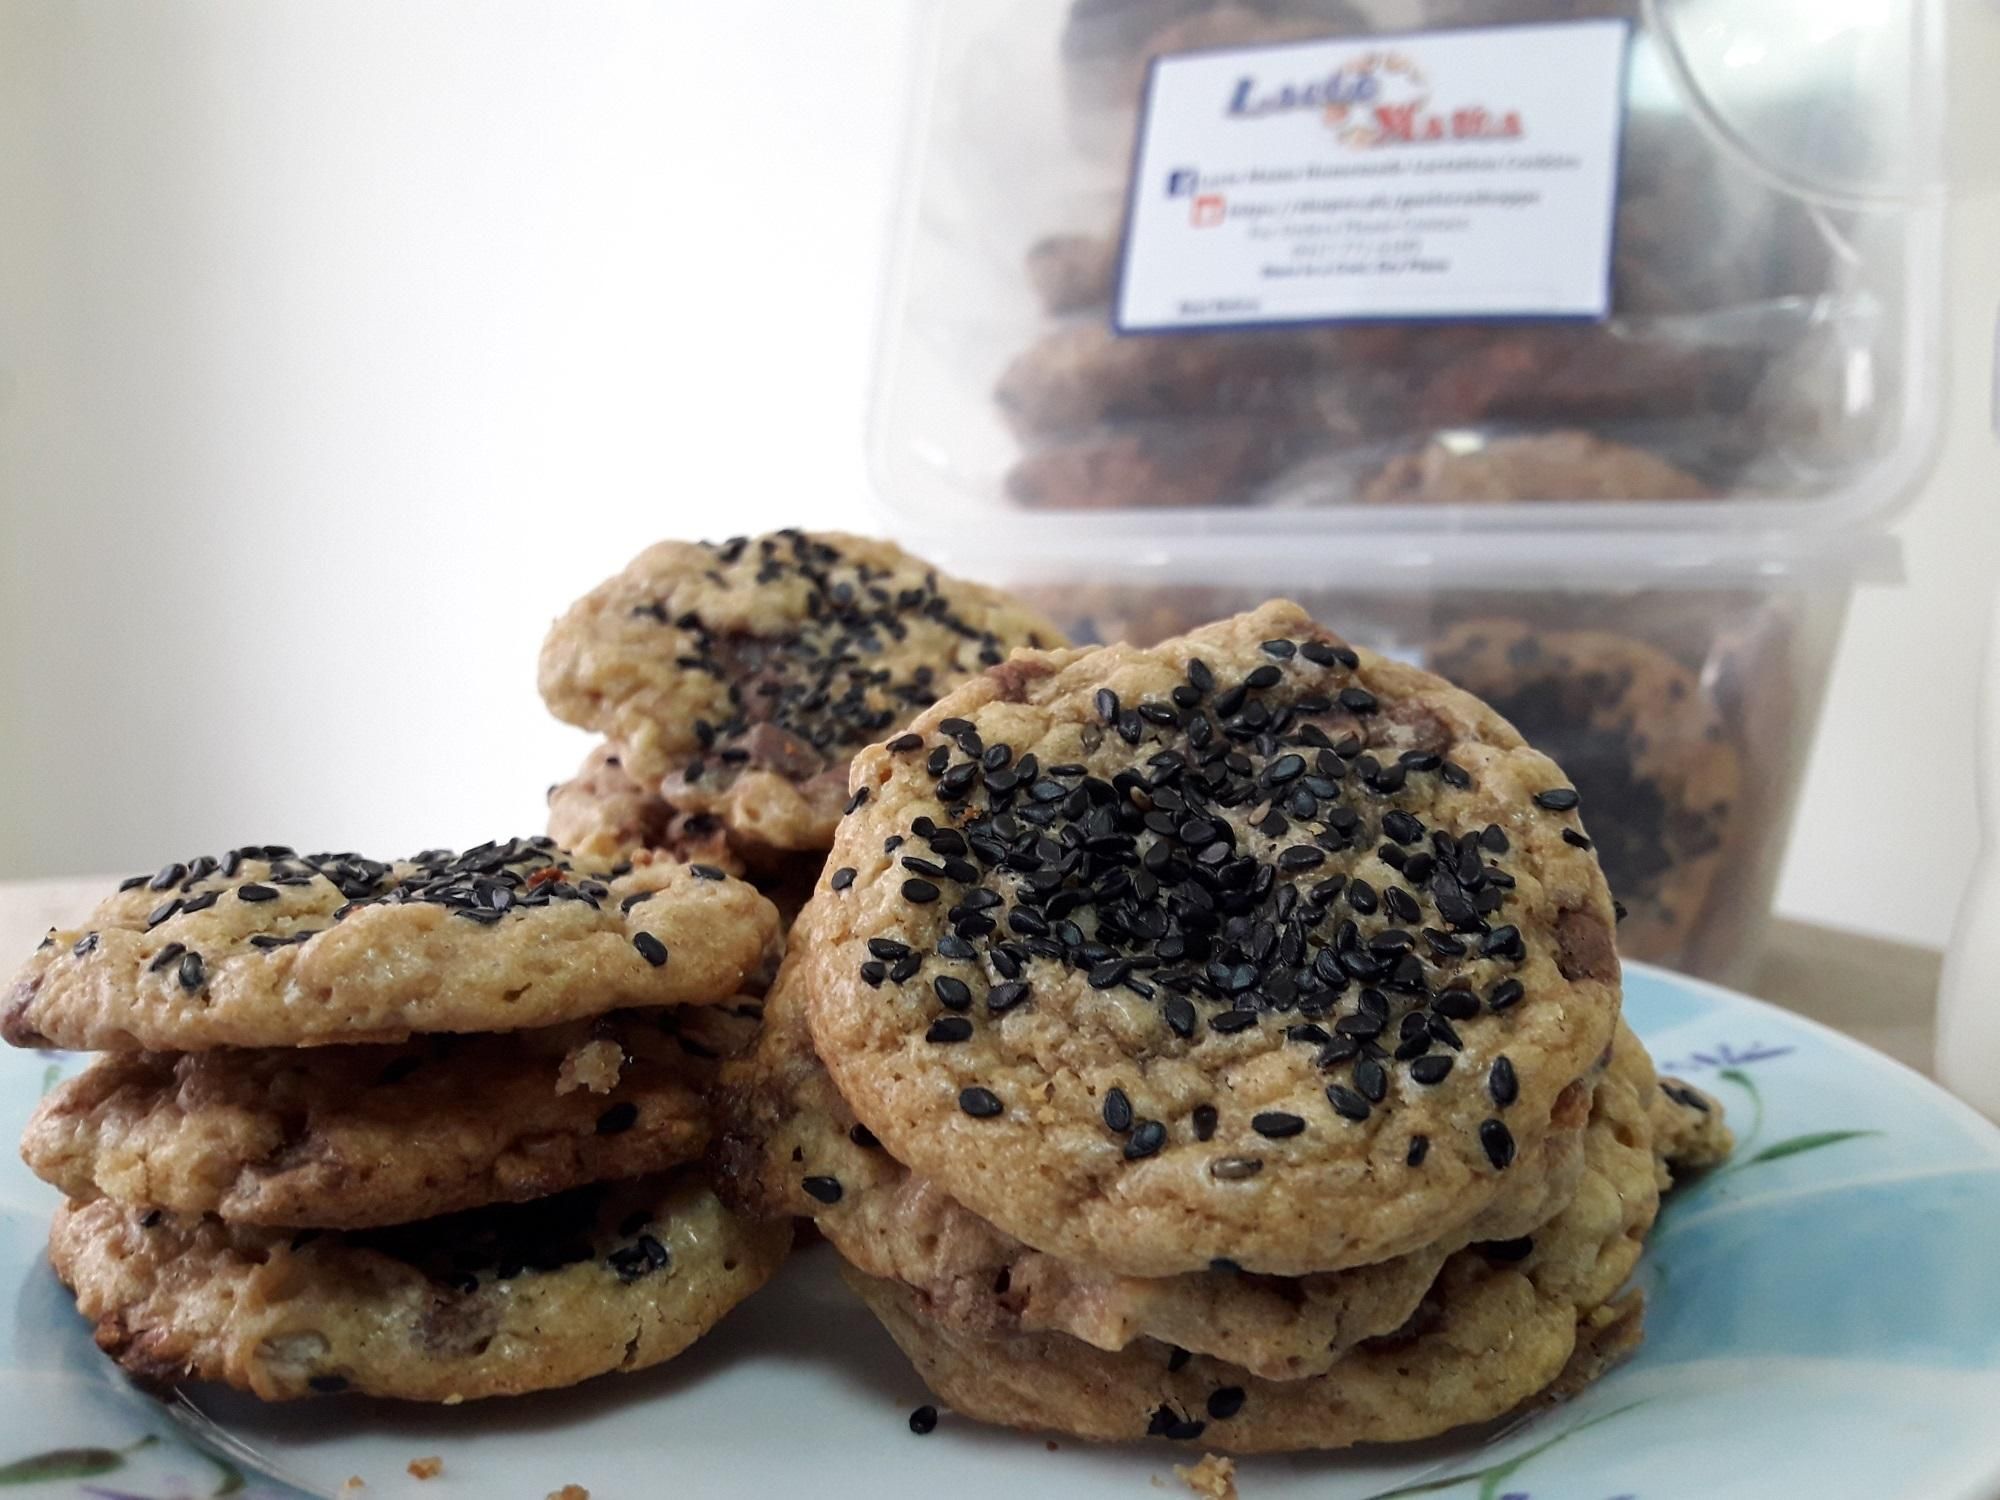 Cookies Brands Cookie Chips On Sale Prices Set Reviews In Bengbeng Drink 80 Sachet Lactation With Black Sesame Seeds By Lacto Mama